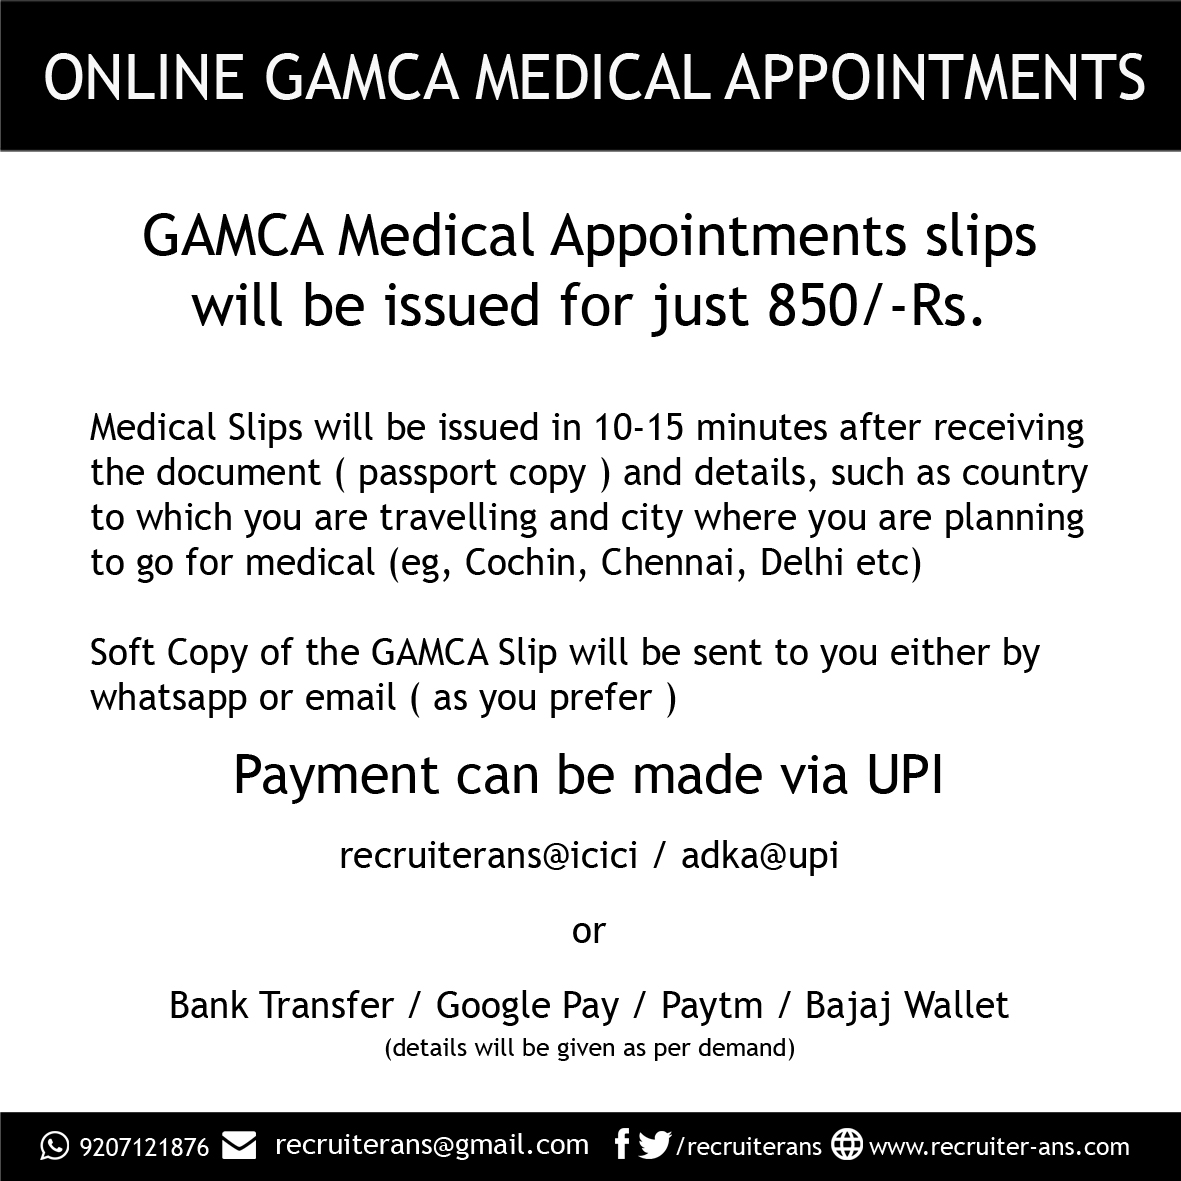 ONLINE GAMCA Medical Appointment